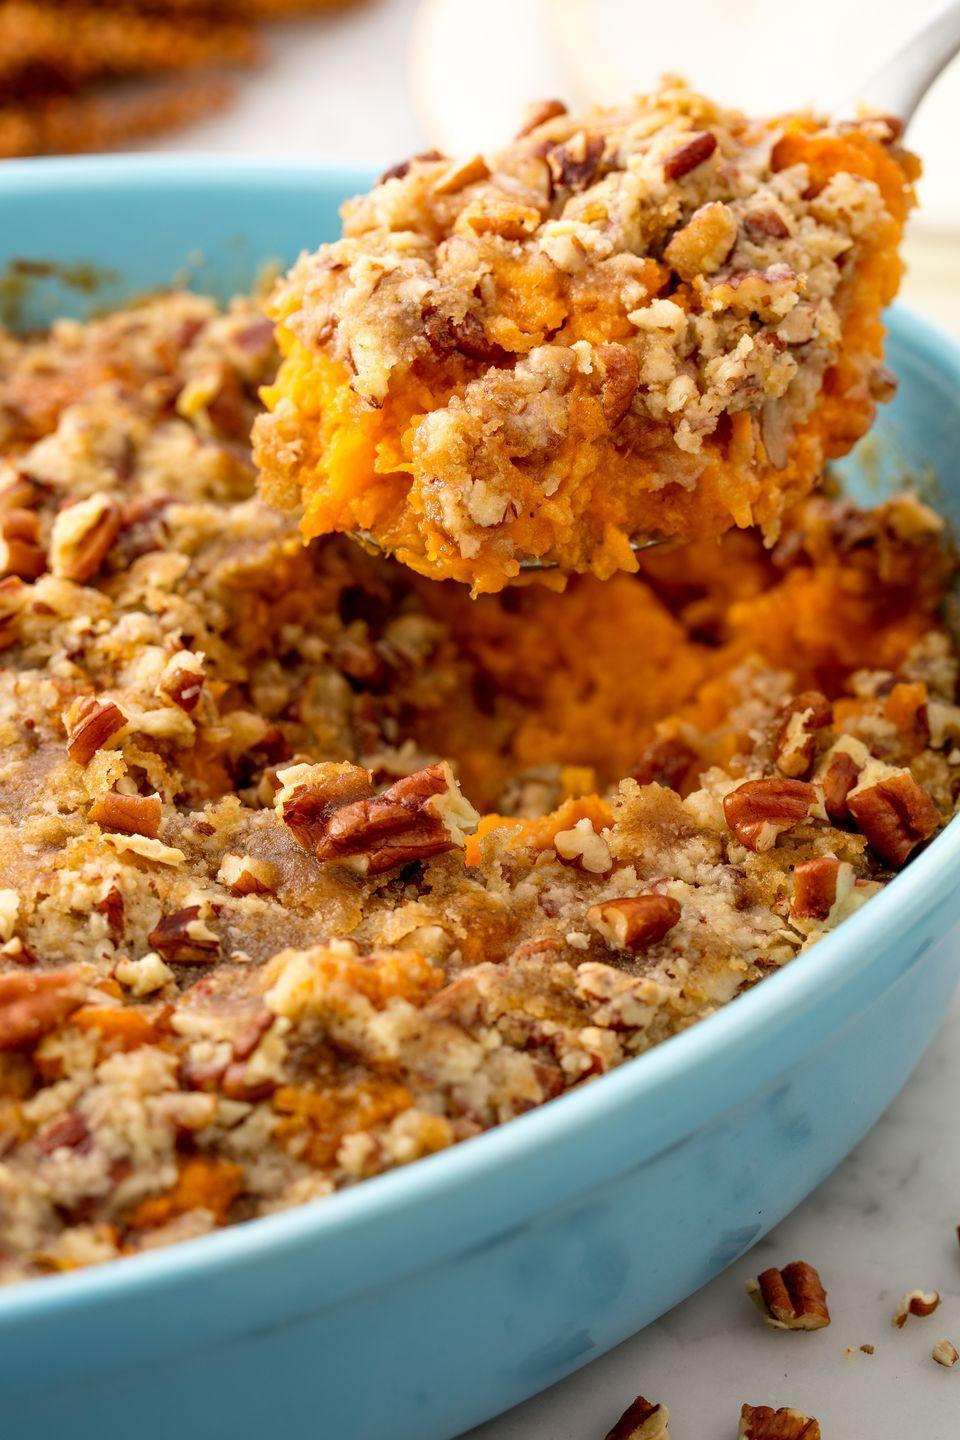 "<p>Everyone's favorite thanksgiving dish.</p><p>Get the recipe from <a href=""https://www.delish.com/cooking/recipe-ideas/recipes/a55342/sweet-potato-casserole-recipe/"" rel=""nofollow noopener"" target=""_blank"" data-ylk=""slk:Delish"" class=""link rapid-noclick-resp"">Delish</a>.</p>"